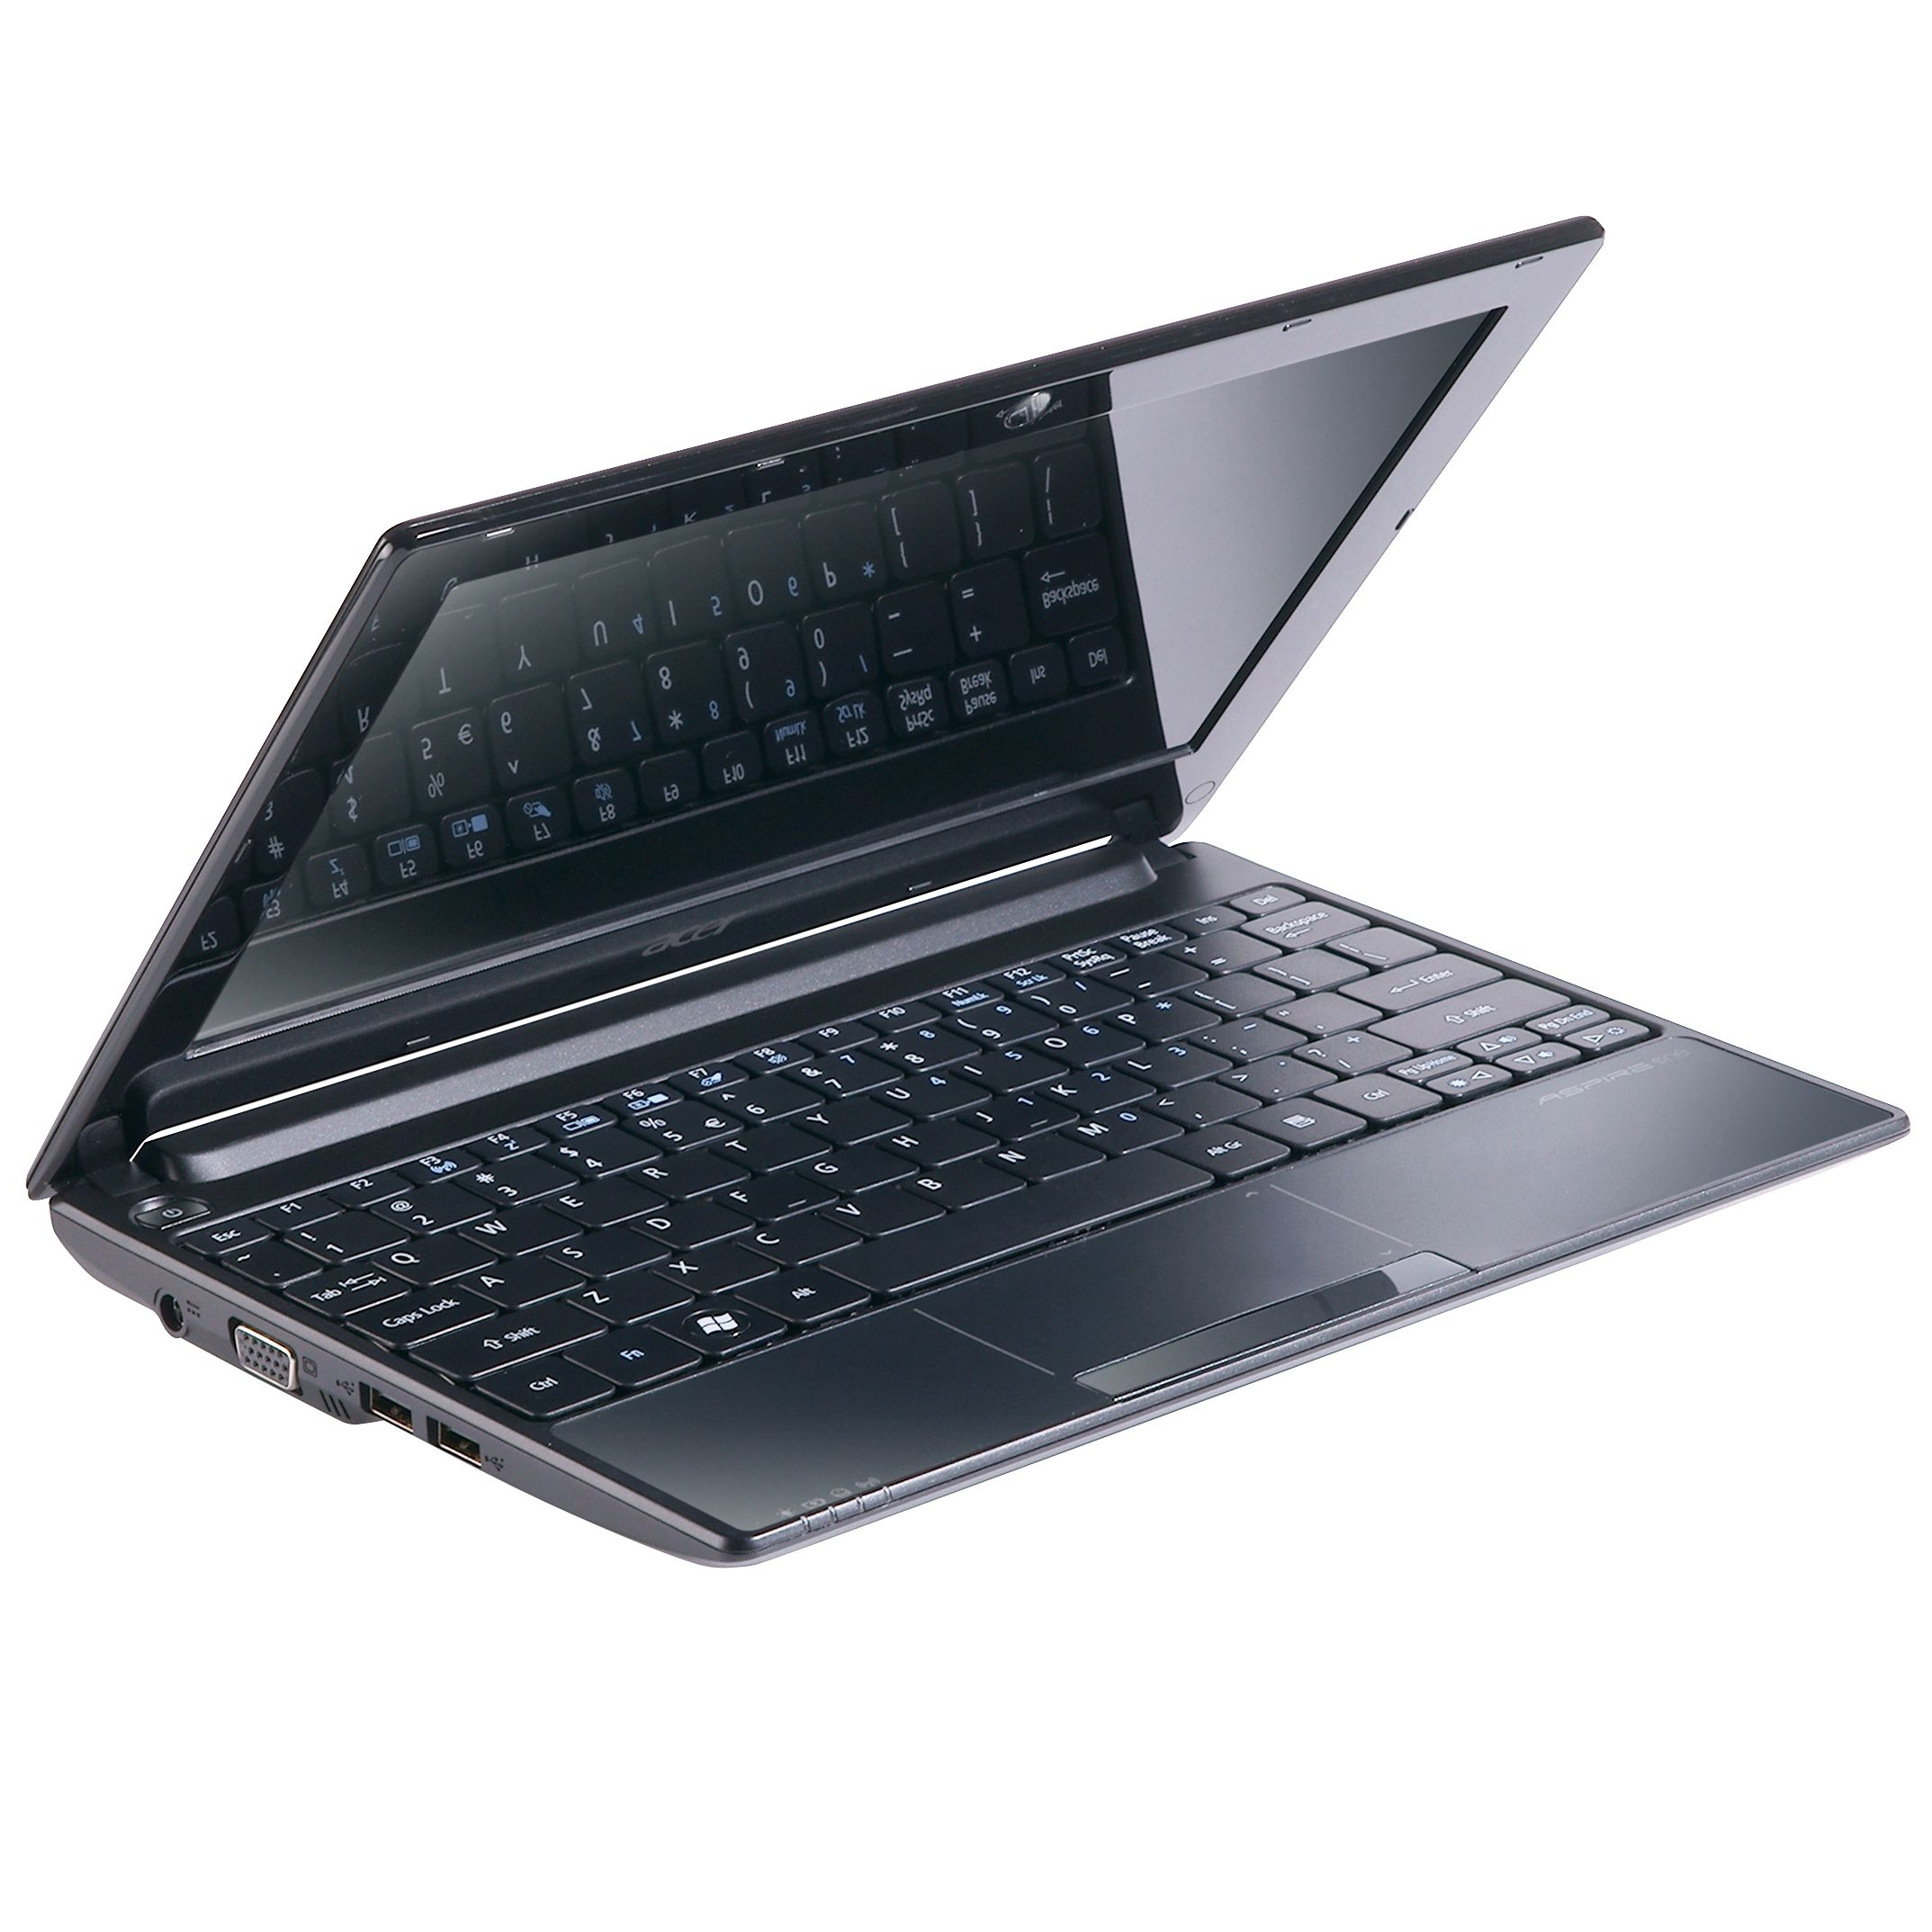 Acer Aspire One D255 Netbook, 1.66GHz with 10.1 Inch Display, Black at JohnLewis